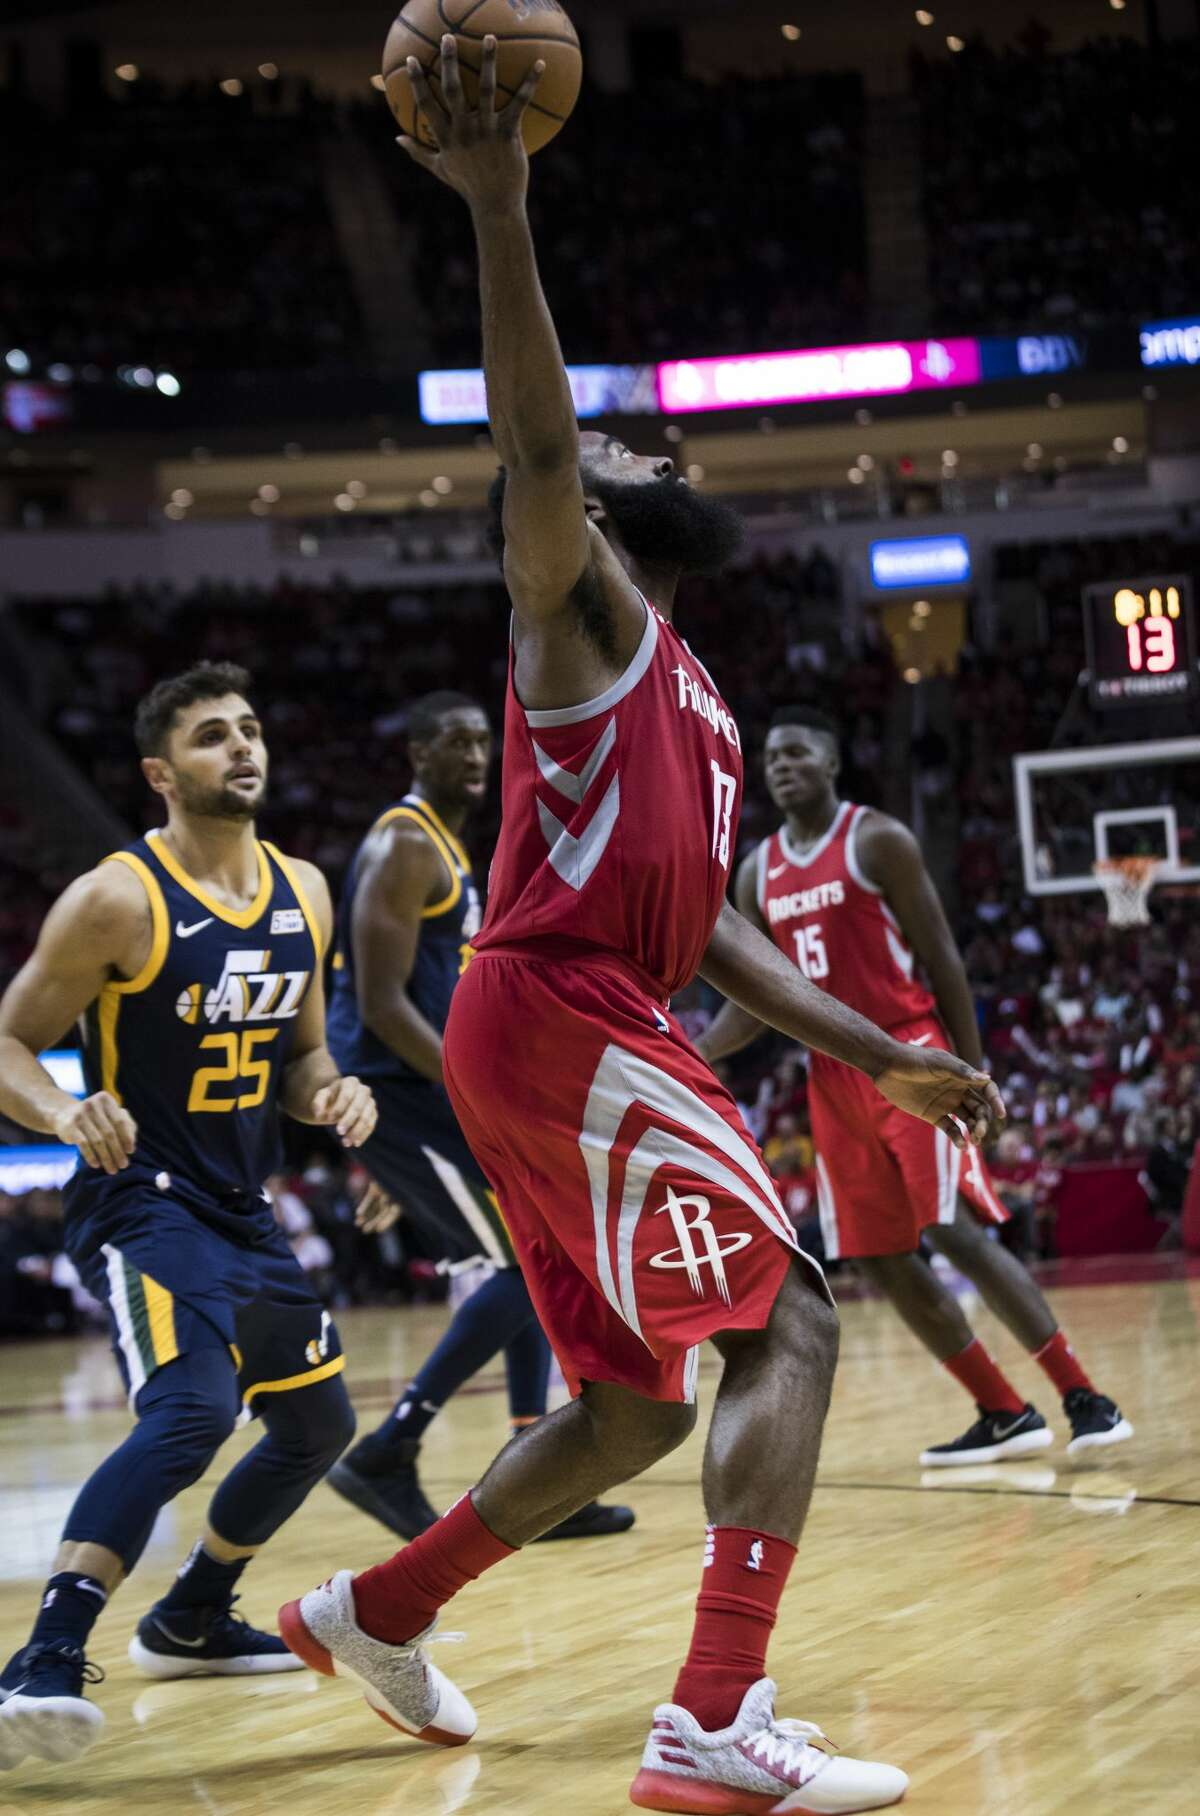 Houston Rockets guard James Harden (13) extends his arm to catch a pass during the game against the Utah Jazz on Sunday, Nov. 5, 2017, in Houston. The Rockets won 137-110 against the Utah Jazz. ( Marie D. De Jesus / Houston Chronicle )